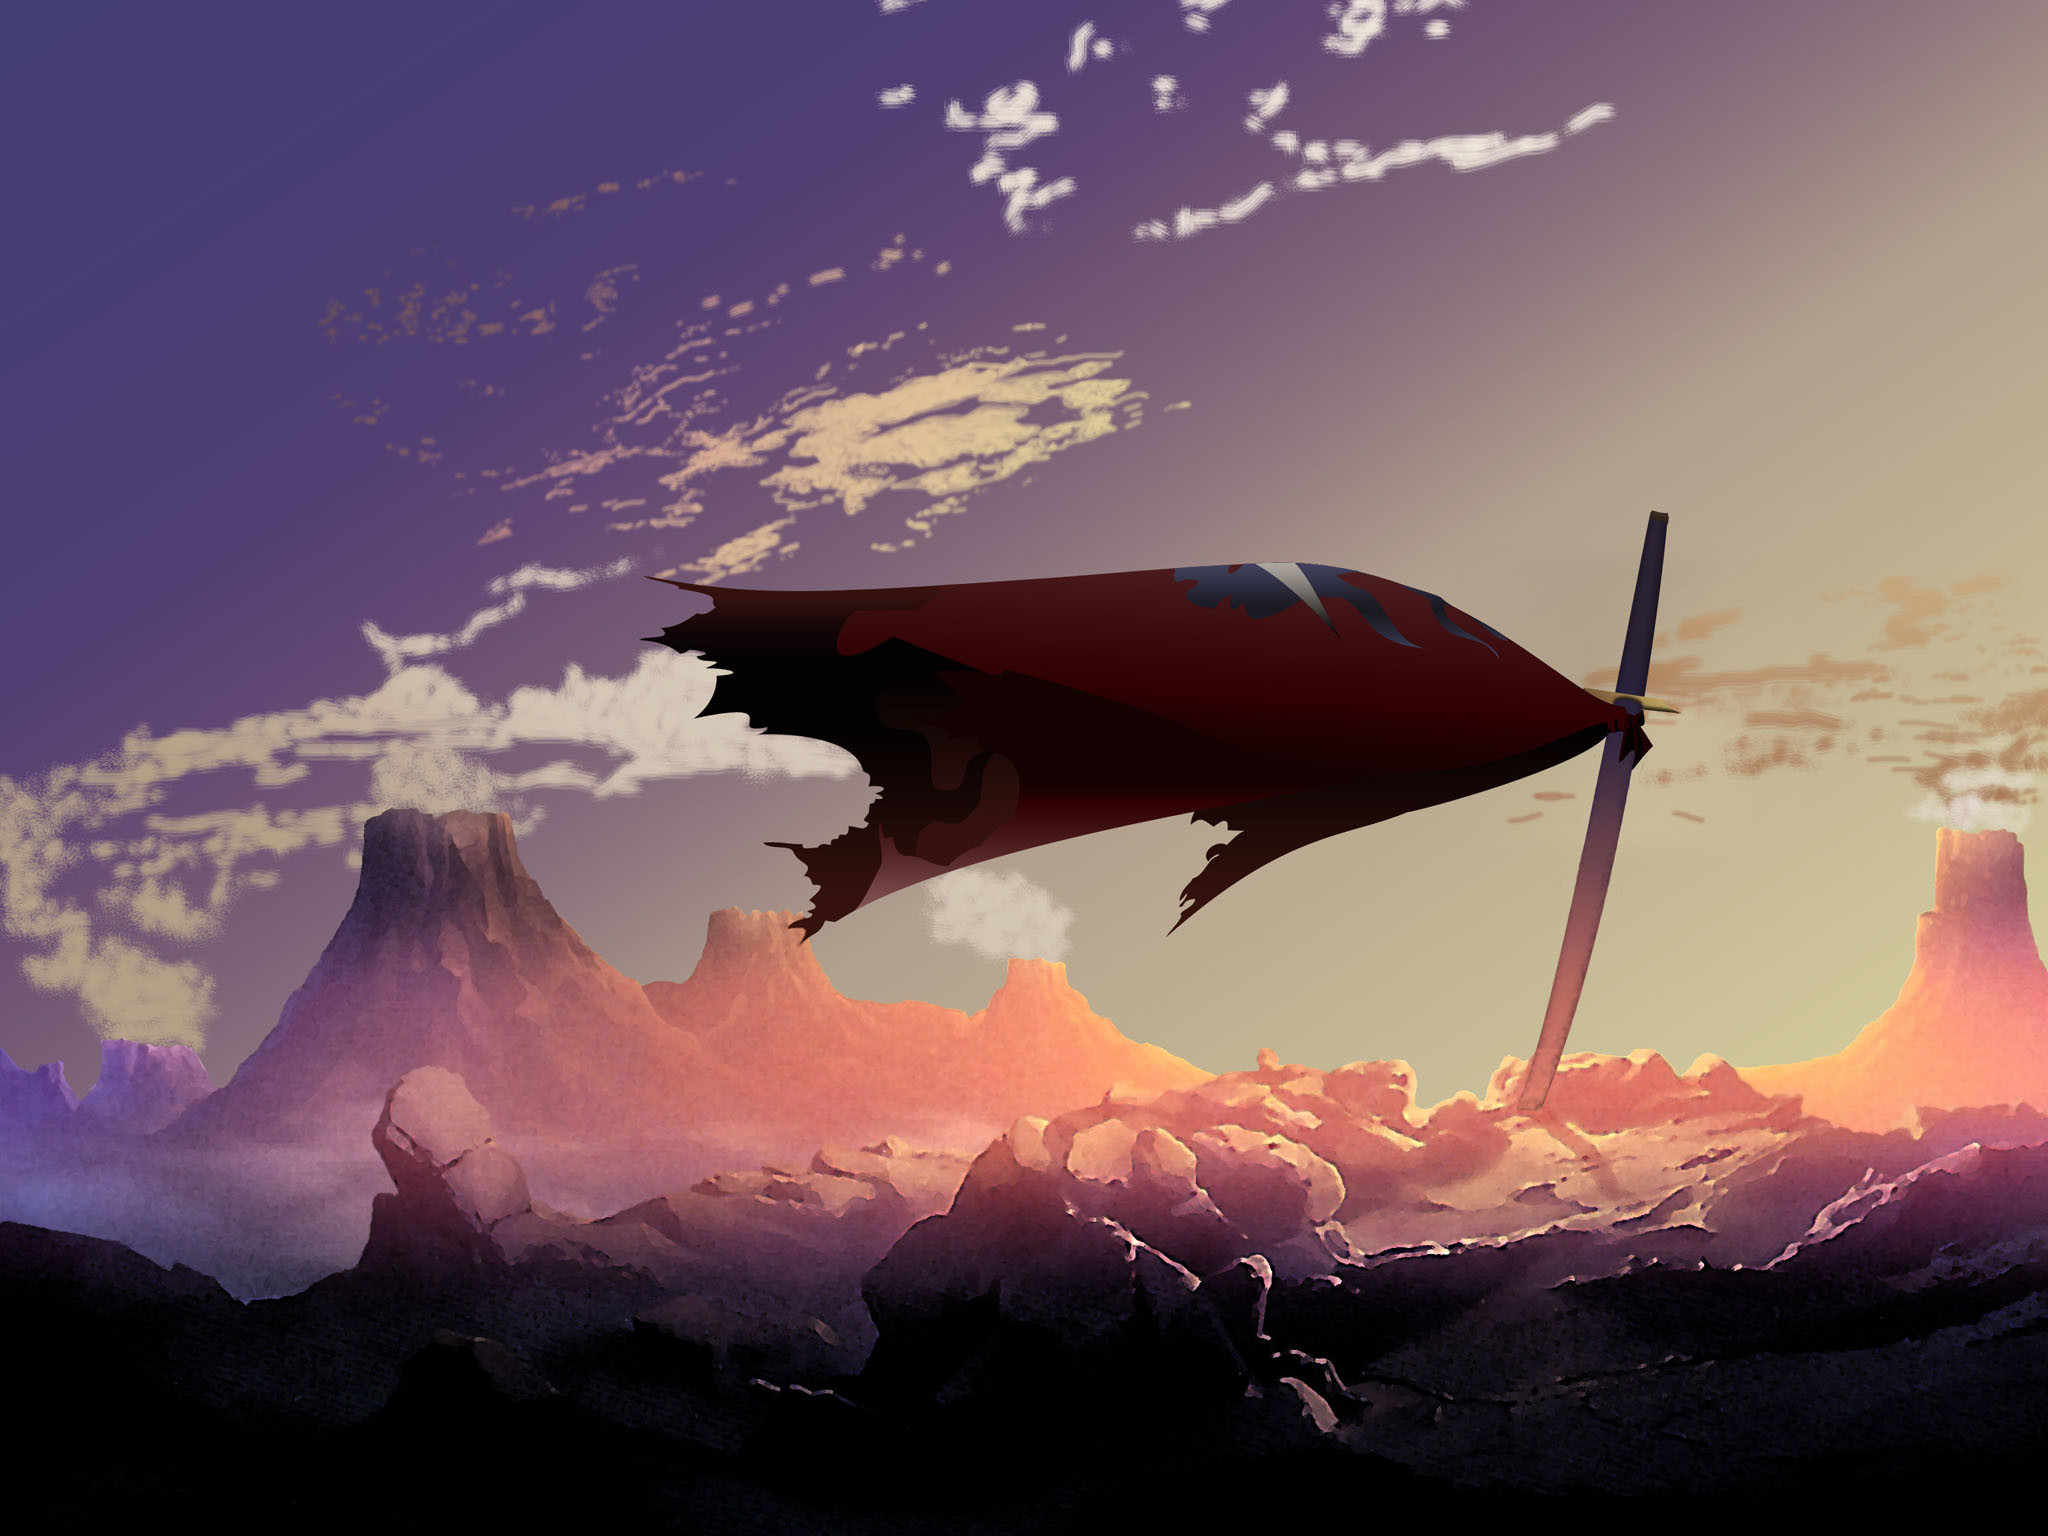 2048x1536 Tengen Toppa Gurren Lagann Wallpapers. by xXRagnarokXxMay 14 2014. Load 41  more images Grid view